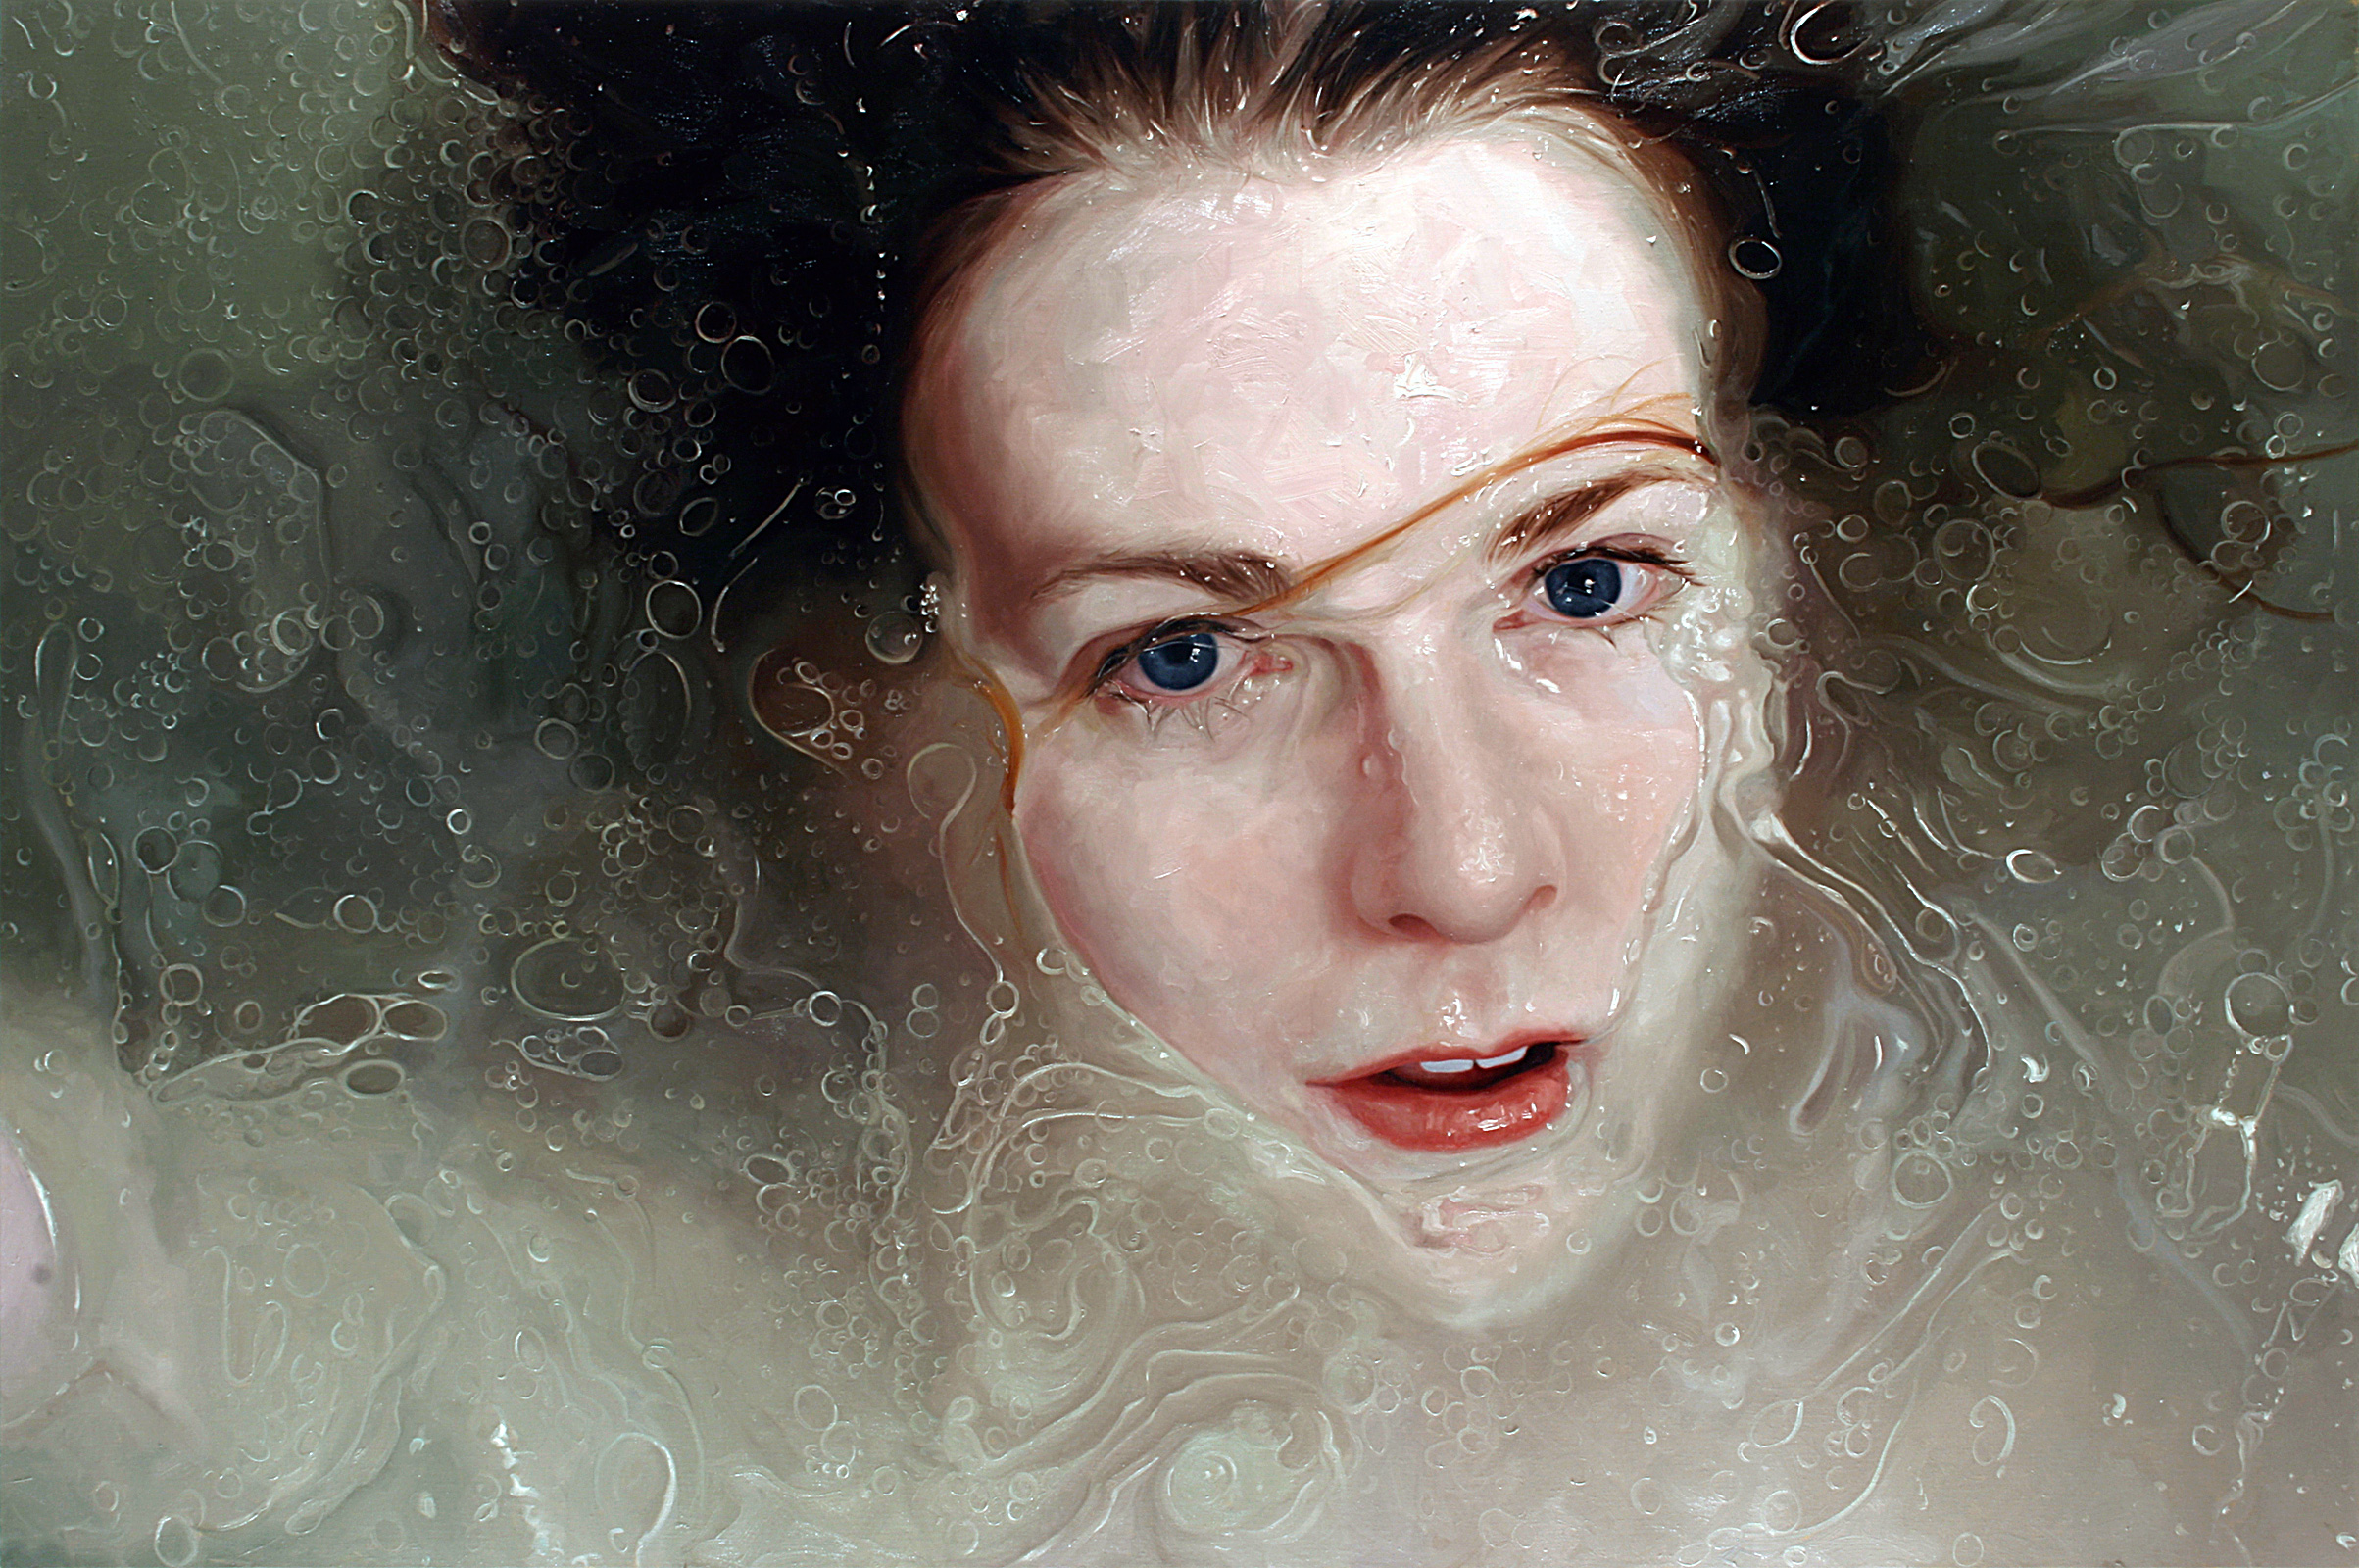 Astonishing hyperrealistic portraits painted by hand cnn style